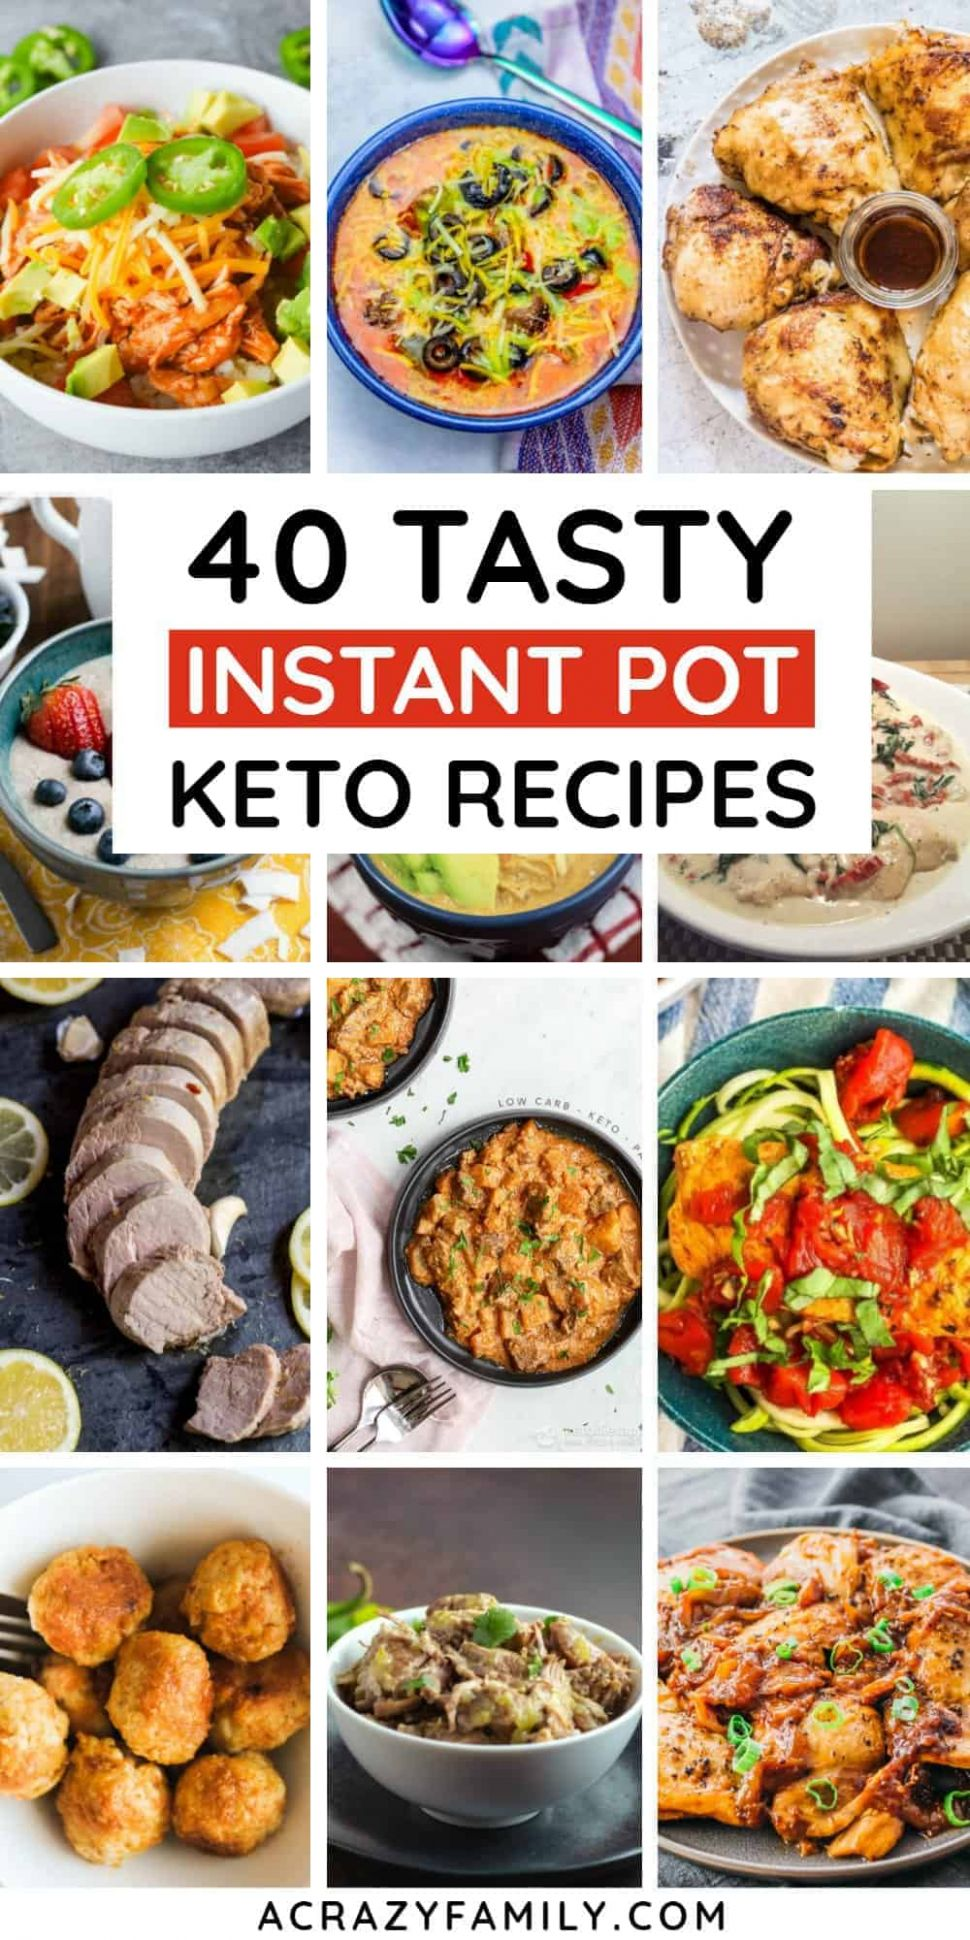 9 Easy Instant Pot Keto Recipes You Must Try - Dinner Recipes You Must Try